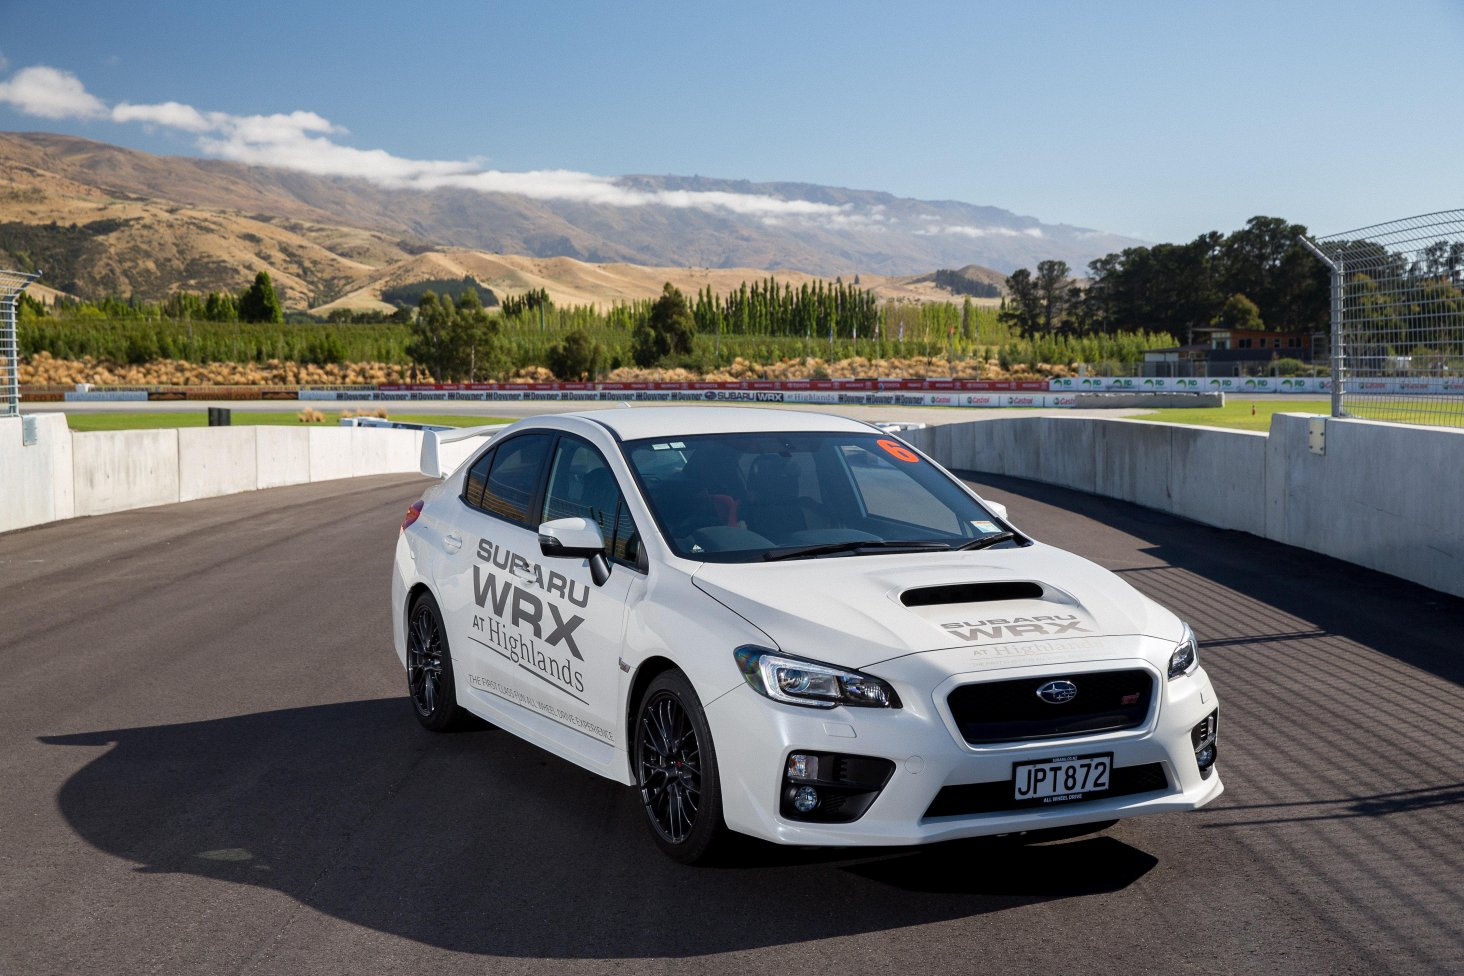 The popular Subaru WRX Experience has been operating at Highlands Motorsport Park for nearly two years now.